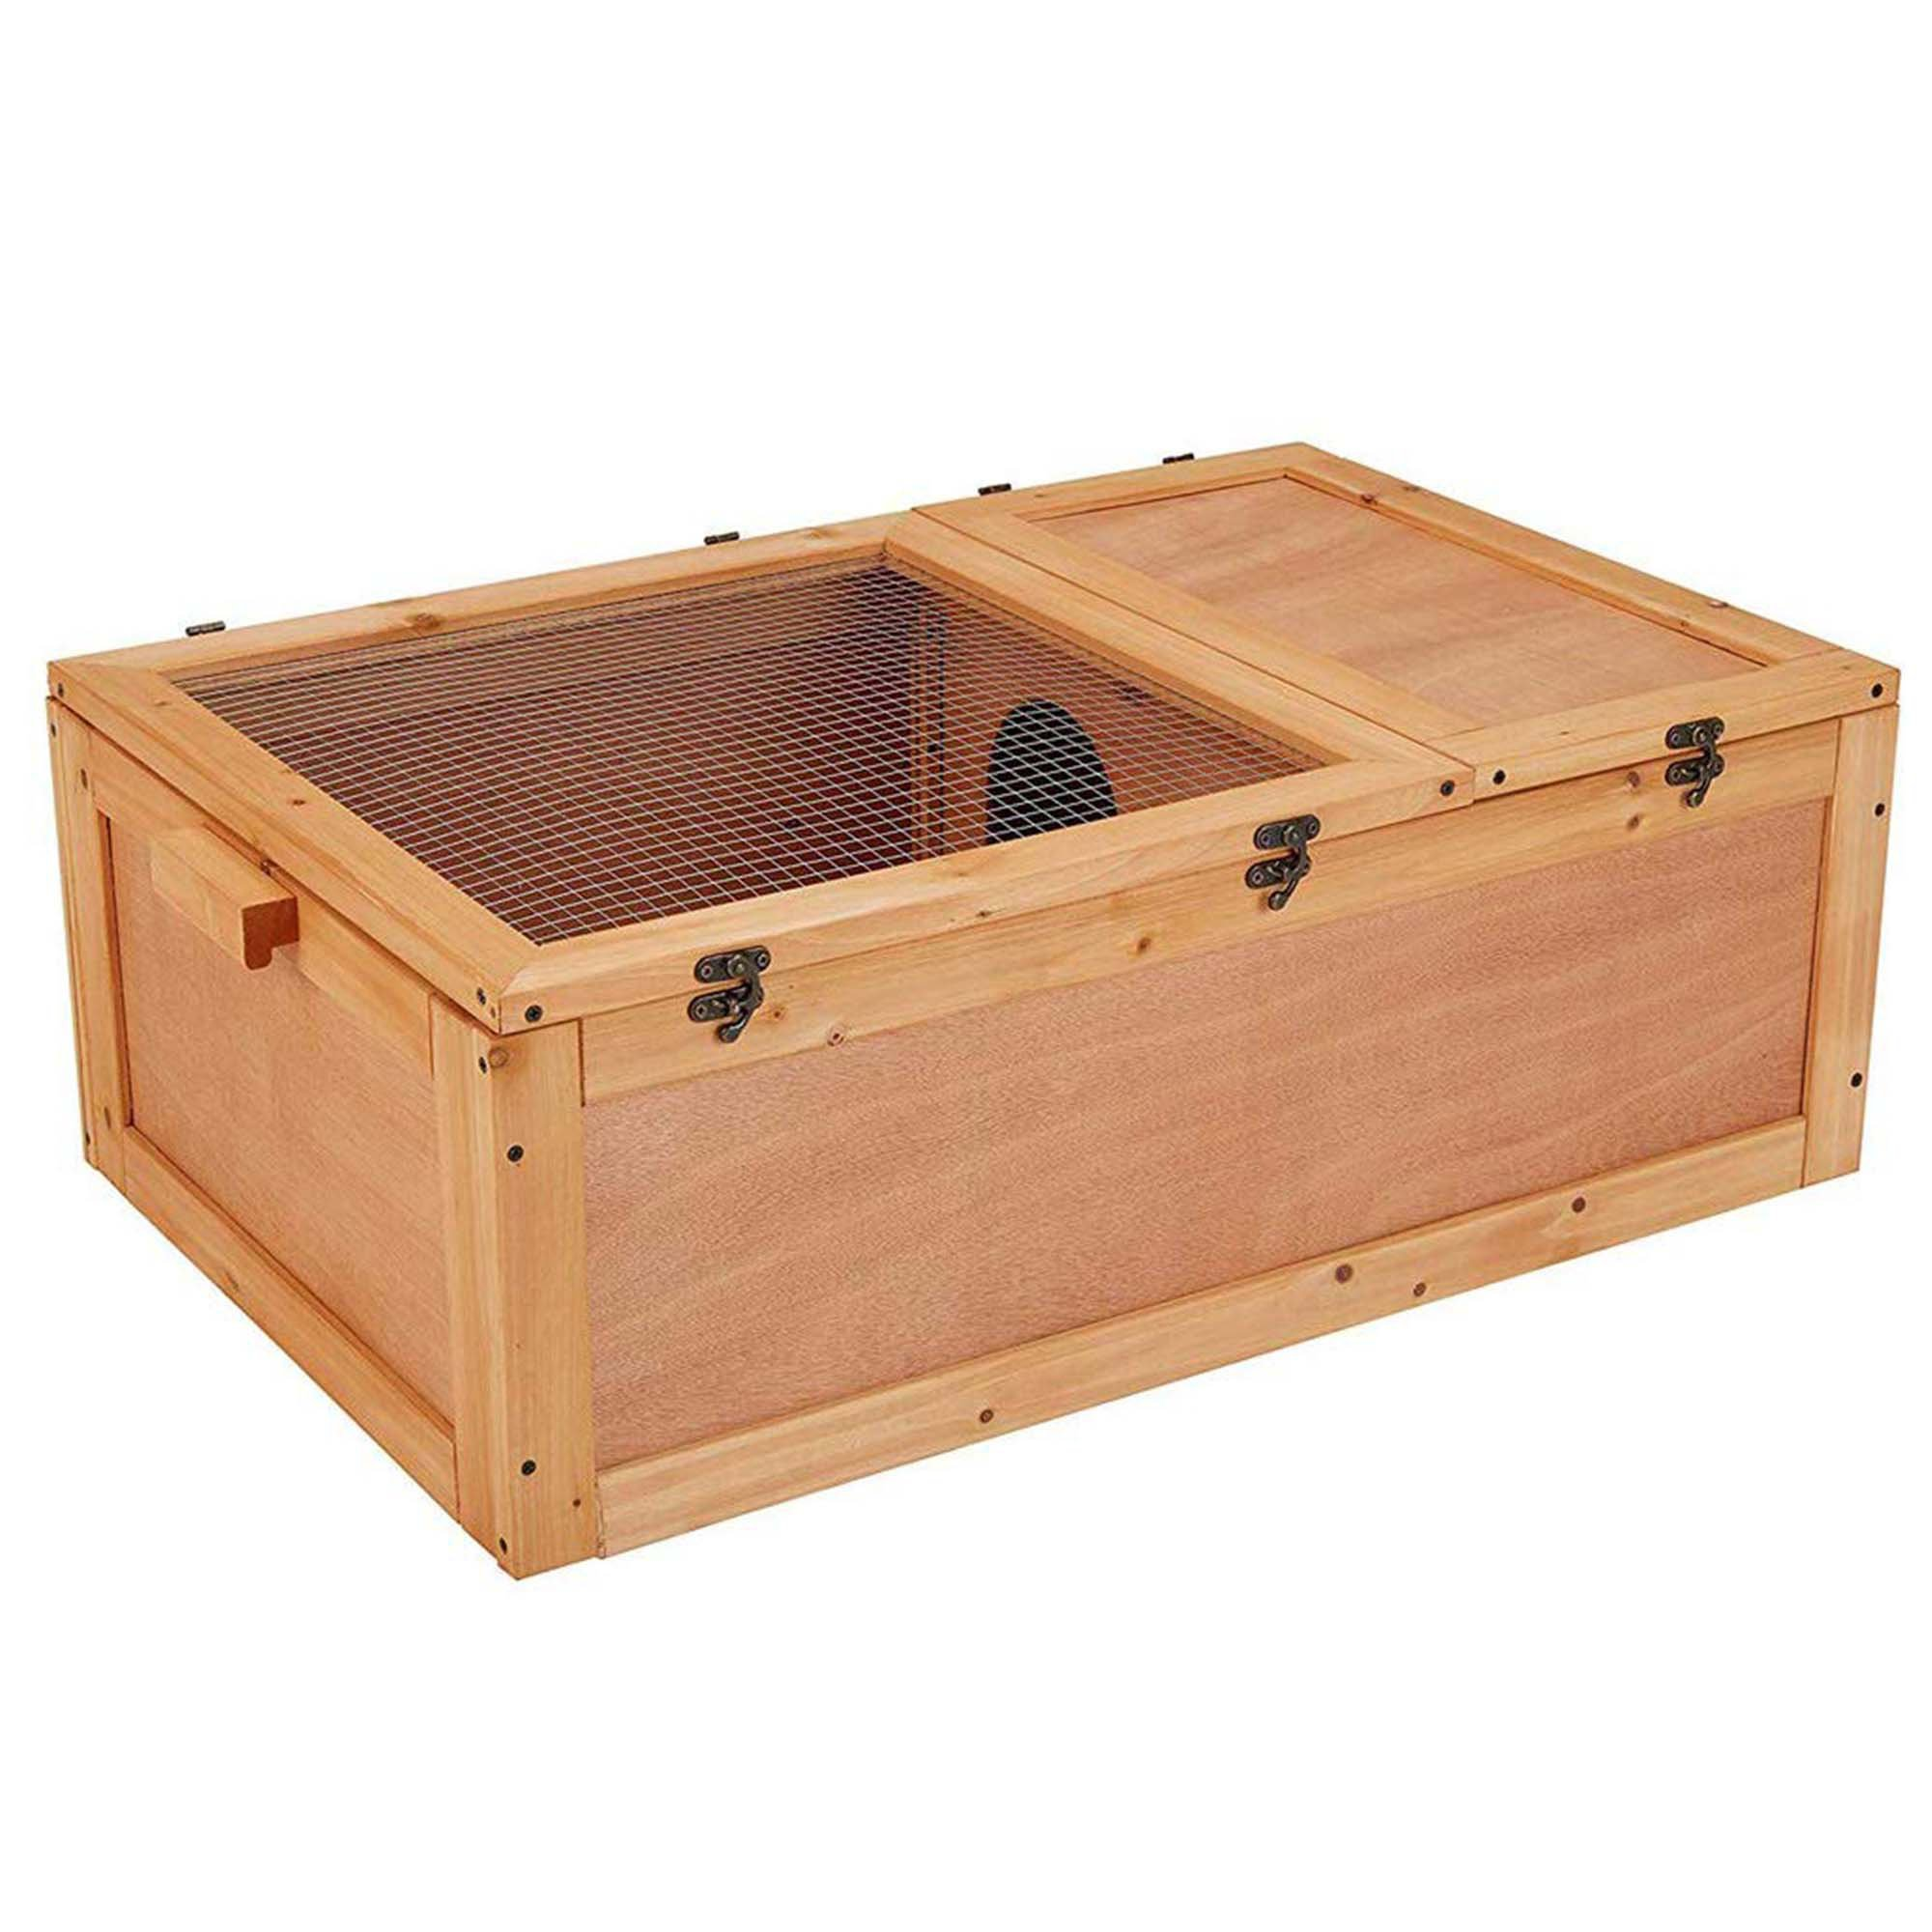 UniPaws Wooden Tortoise House | Petco